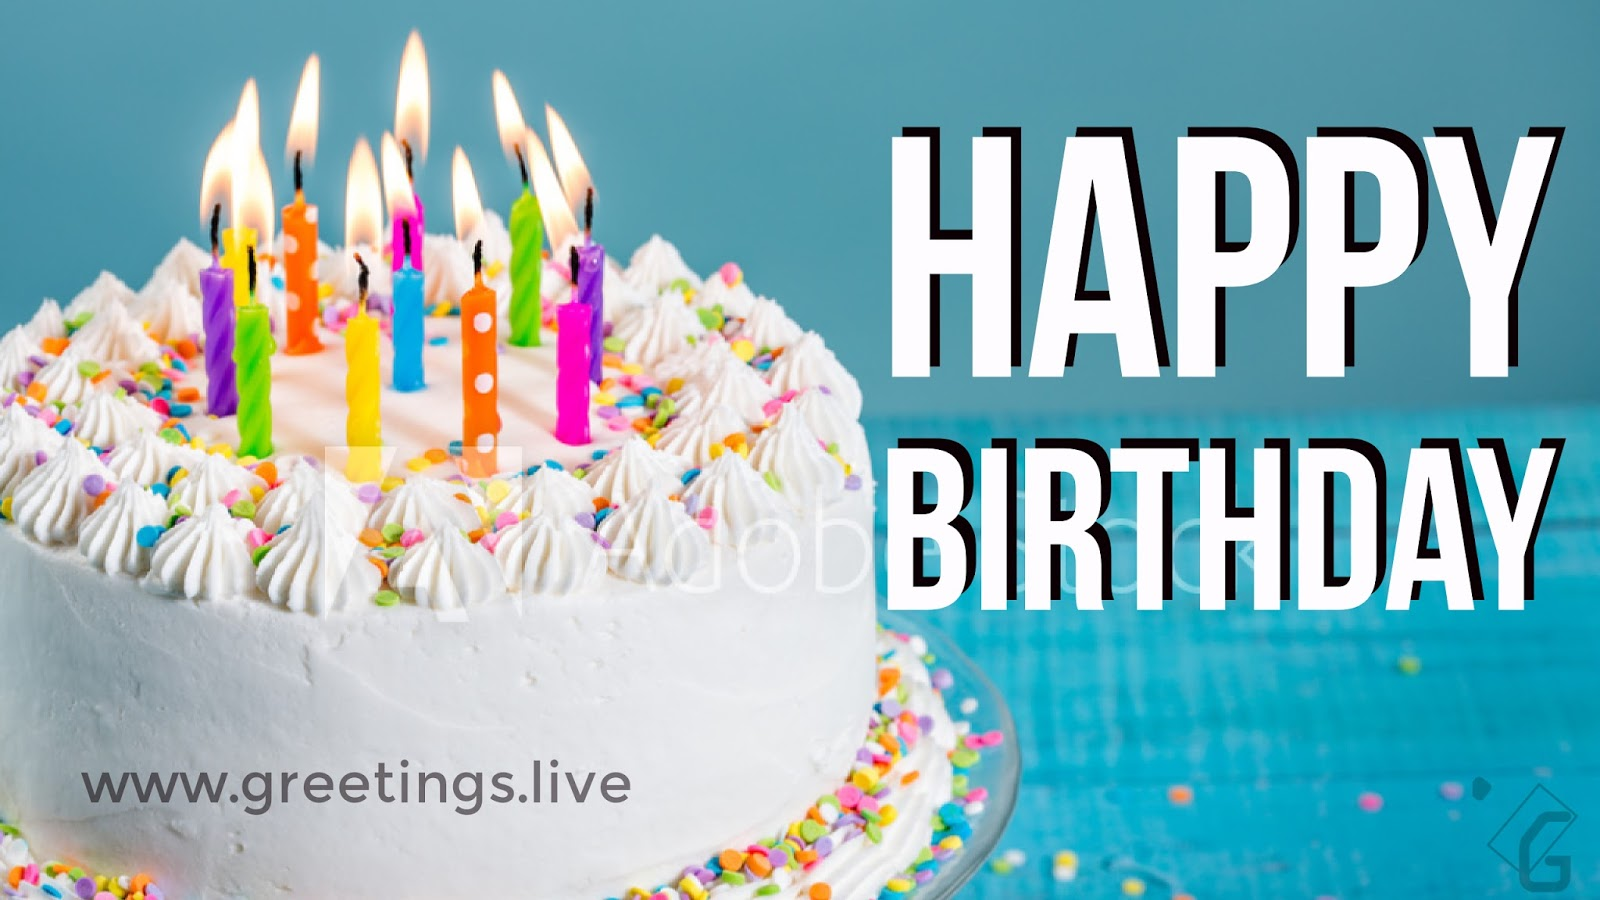 happy birthday hd images 2018 ; Happy%252BBirthday%252BCake%252Band%252BCandles%252Bgreetings%252Blive